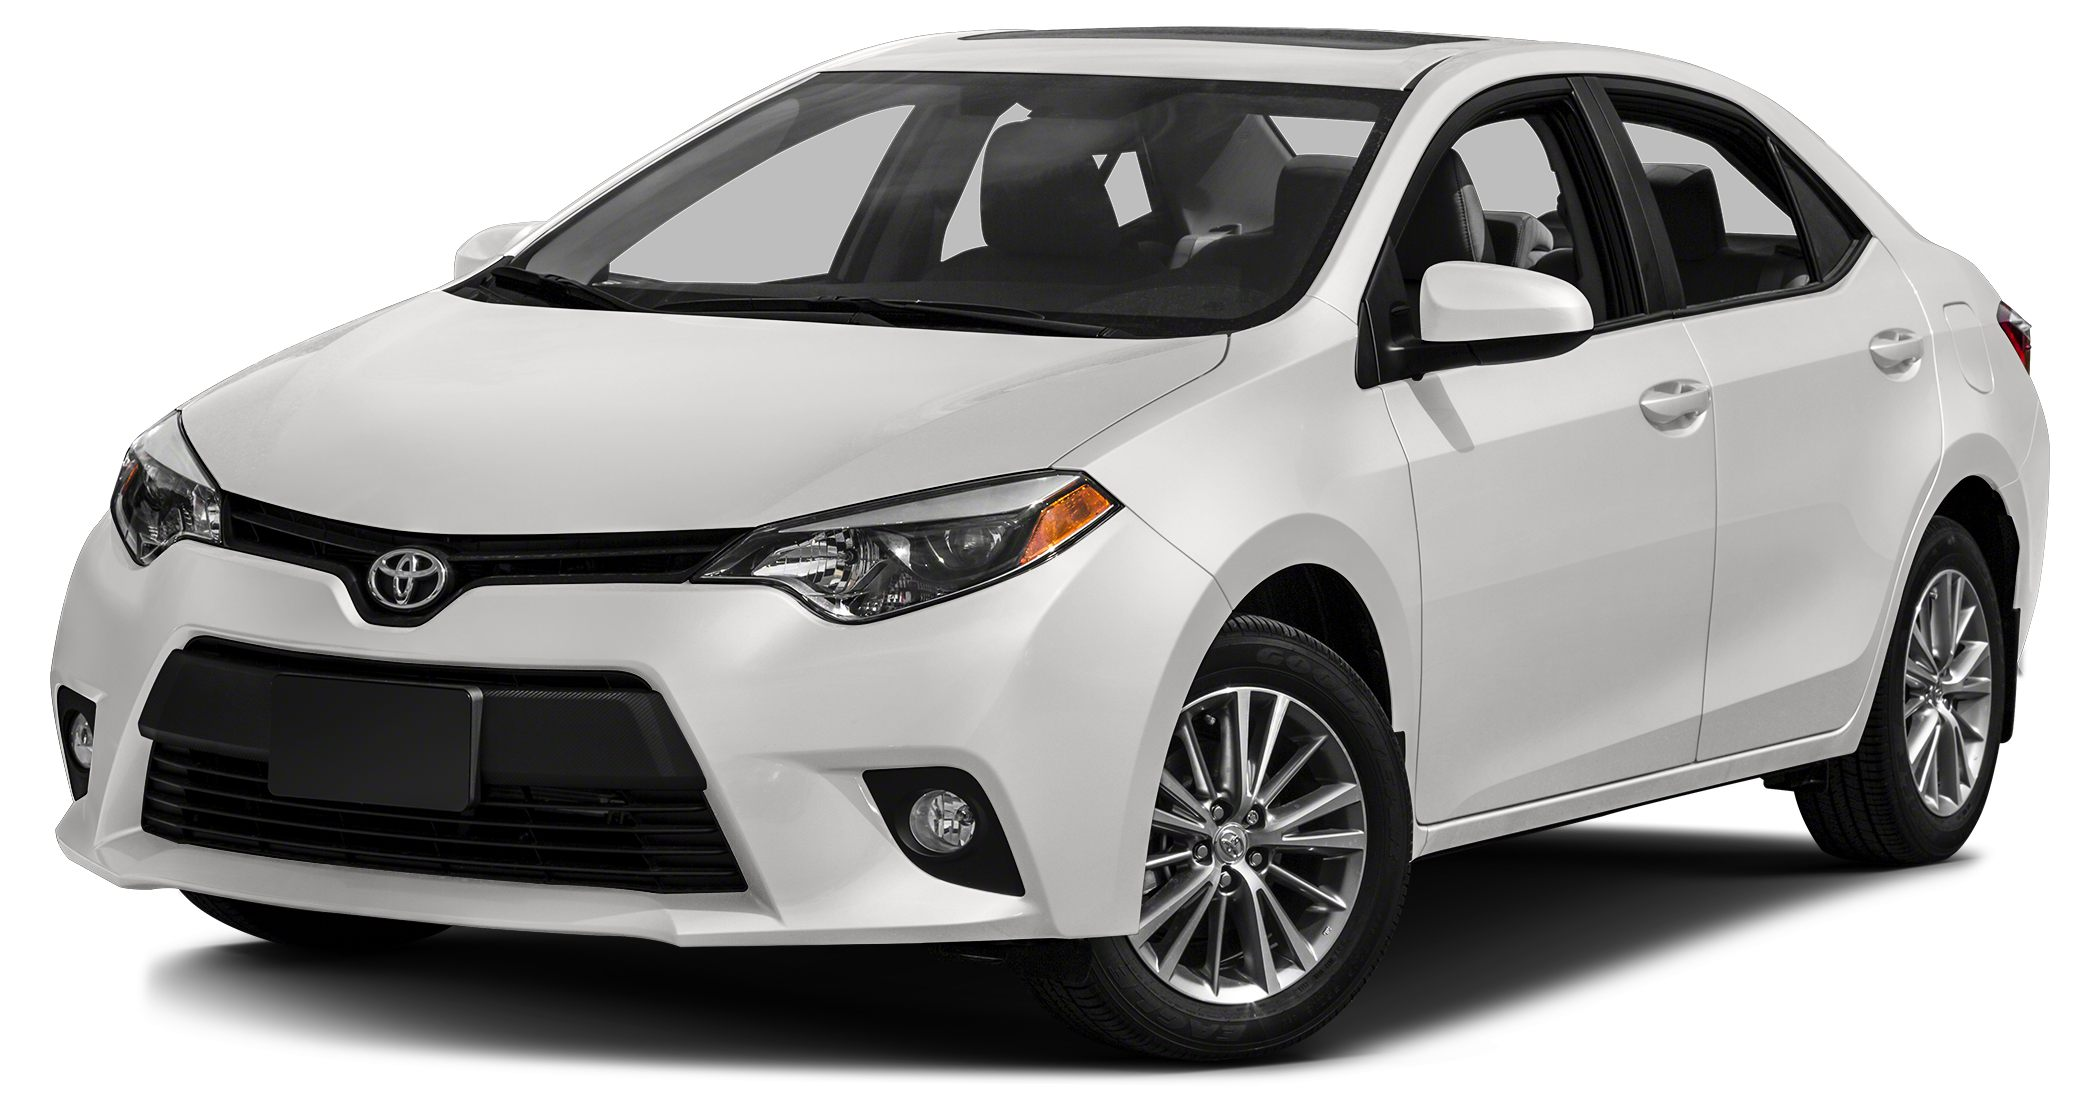 2015 Toyota Corolla LE Carfax One-Owner Vehicle This Toyota Corolla boasts a Regular Unleaded I-4